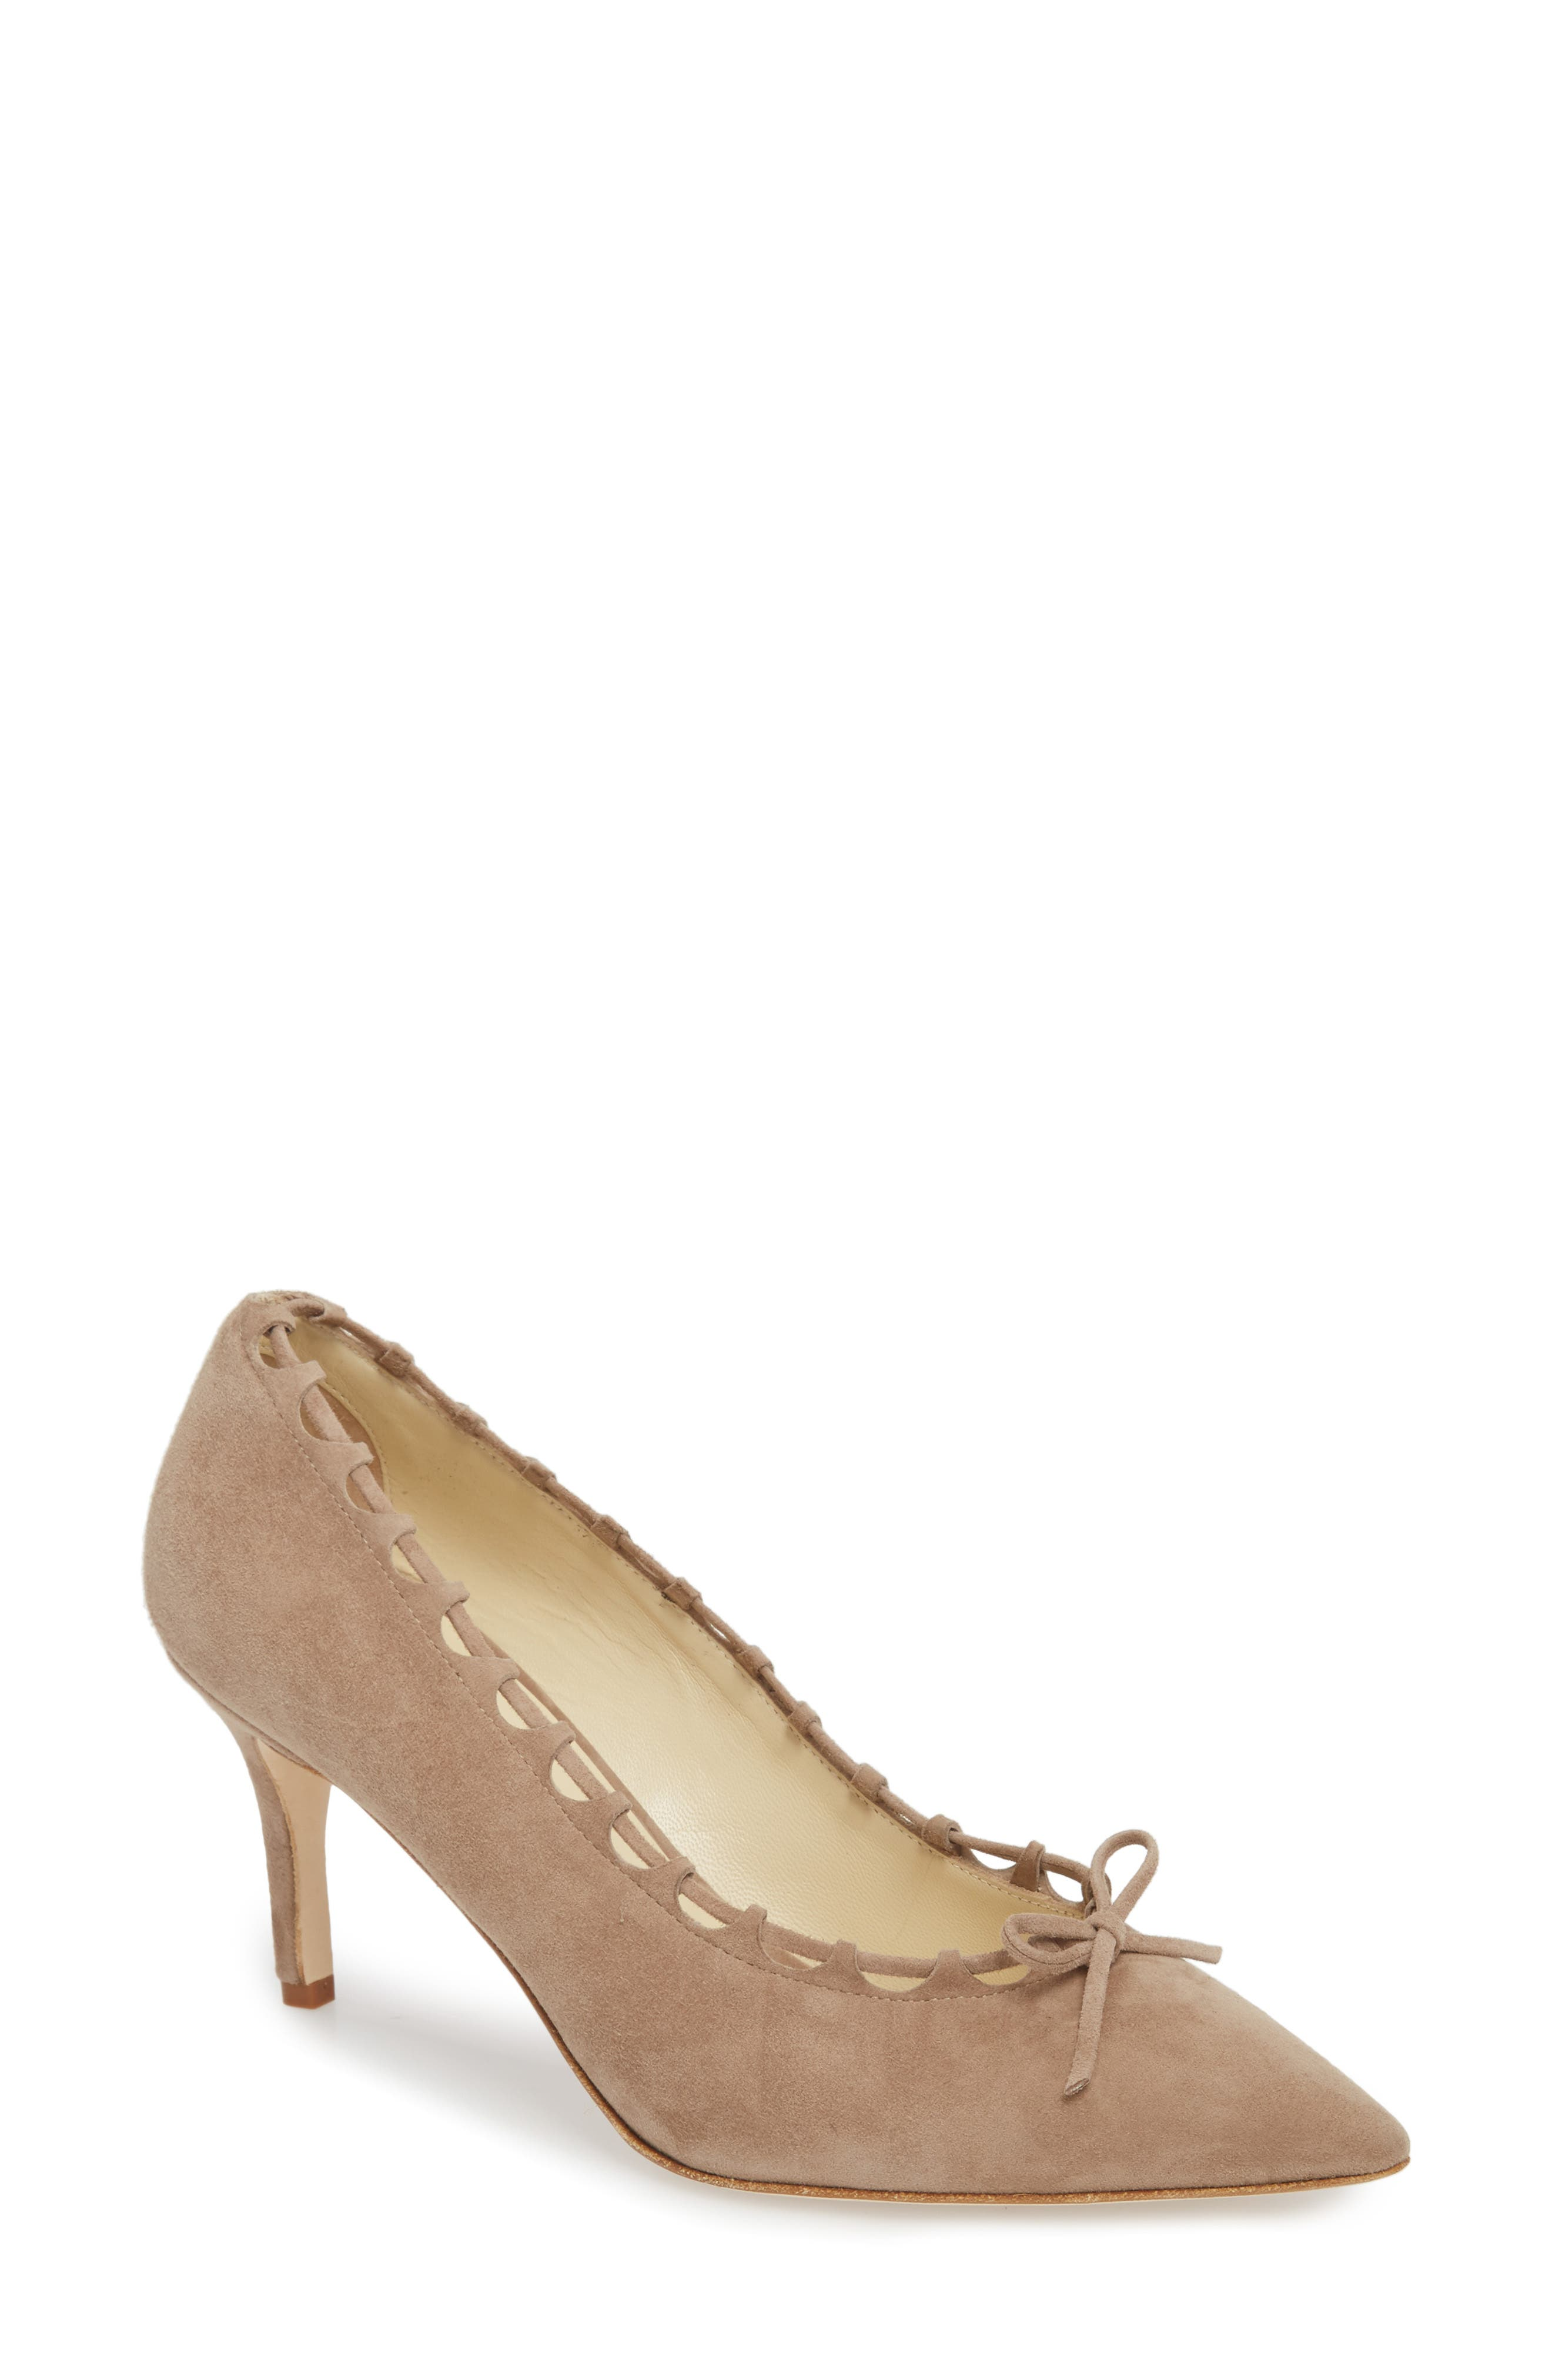 Butter Eris Pointy Toe Pump,                         Main,                         color, Taupe Suede